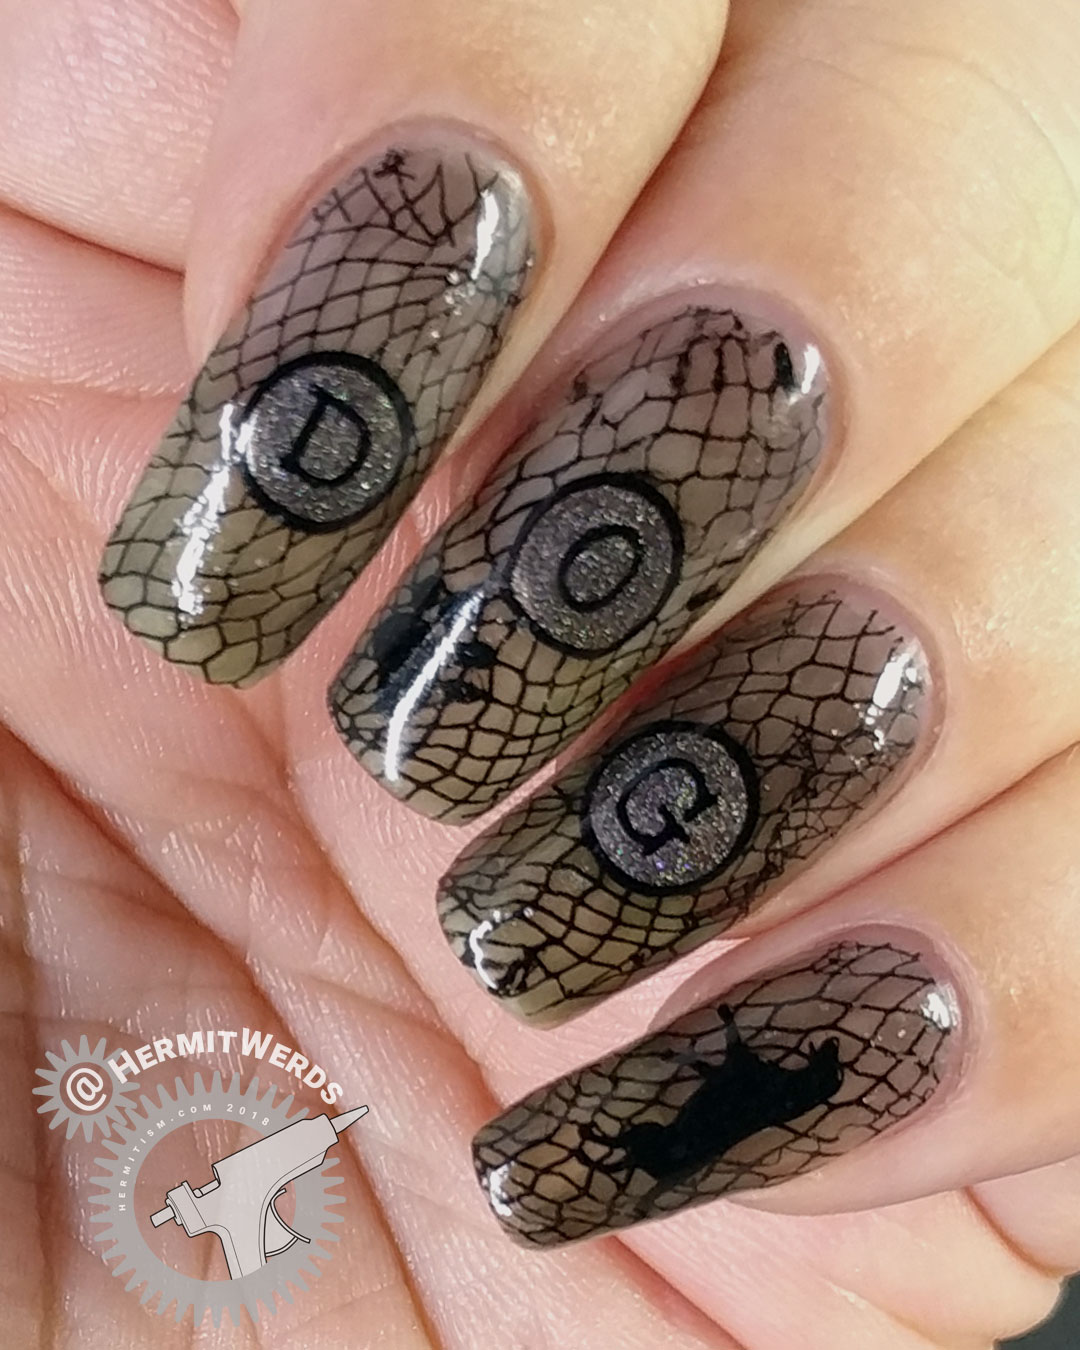 Black Dog - Hermit Werds - black jelly nail art spelling out dog with a black dog and paw print